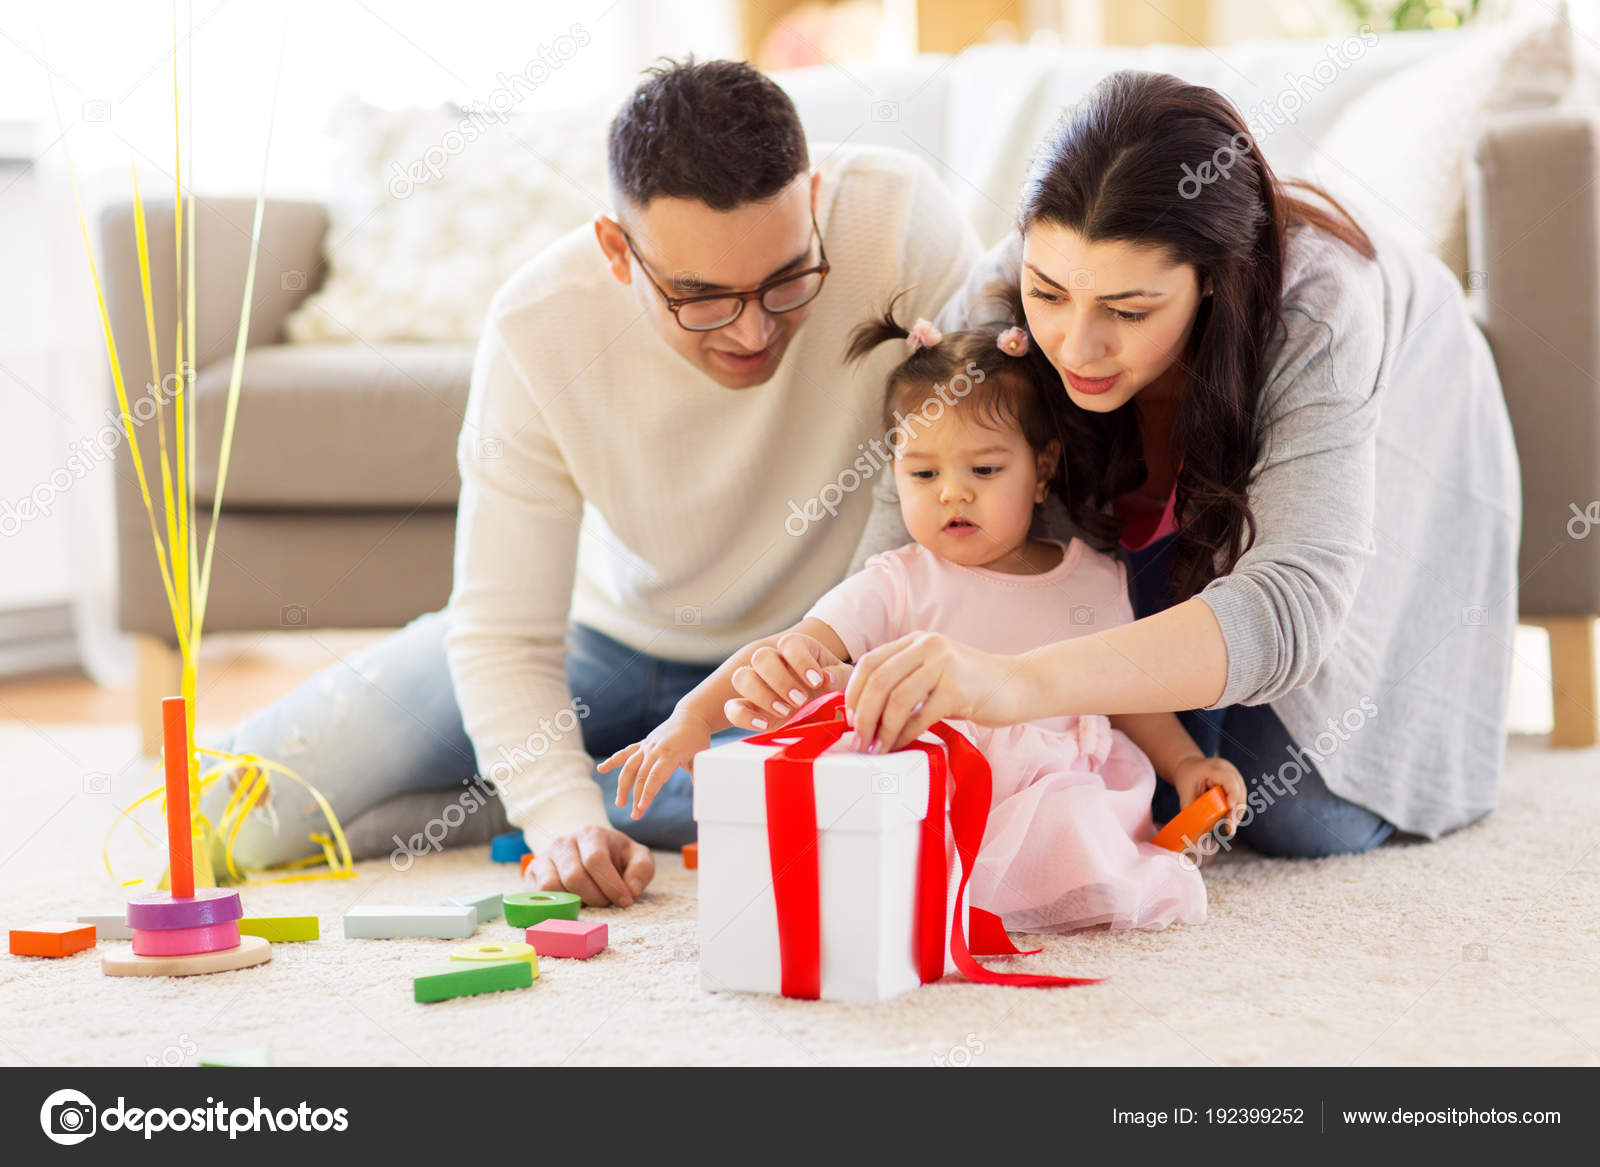 Baby Girl With Birthday Gift And Parents At Home Stock Photo